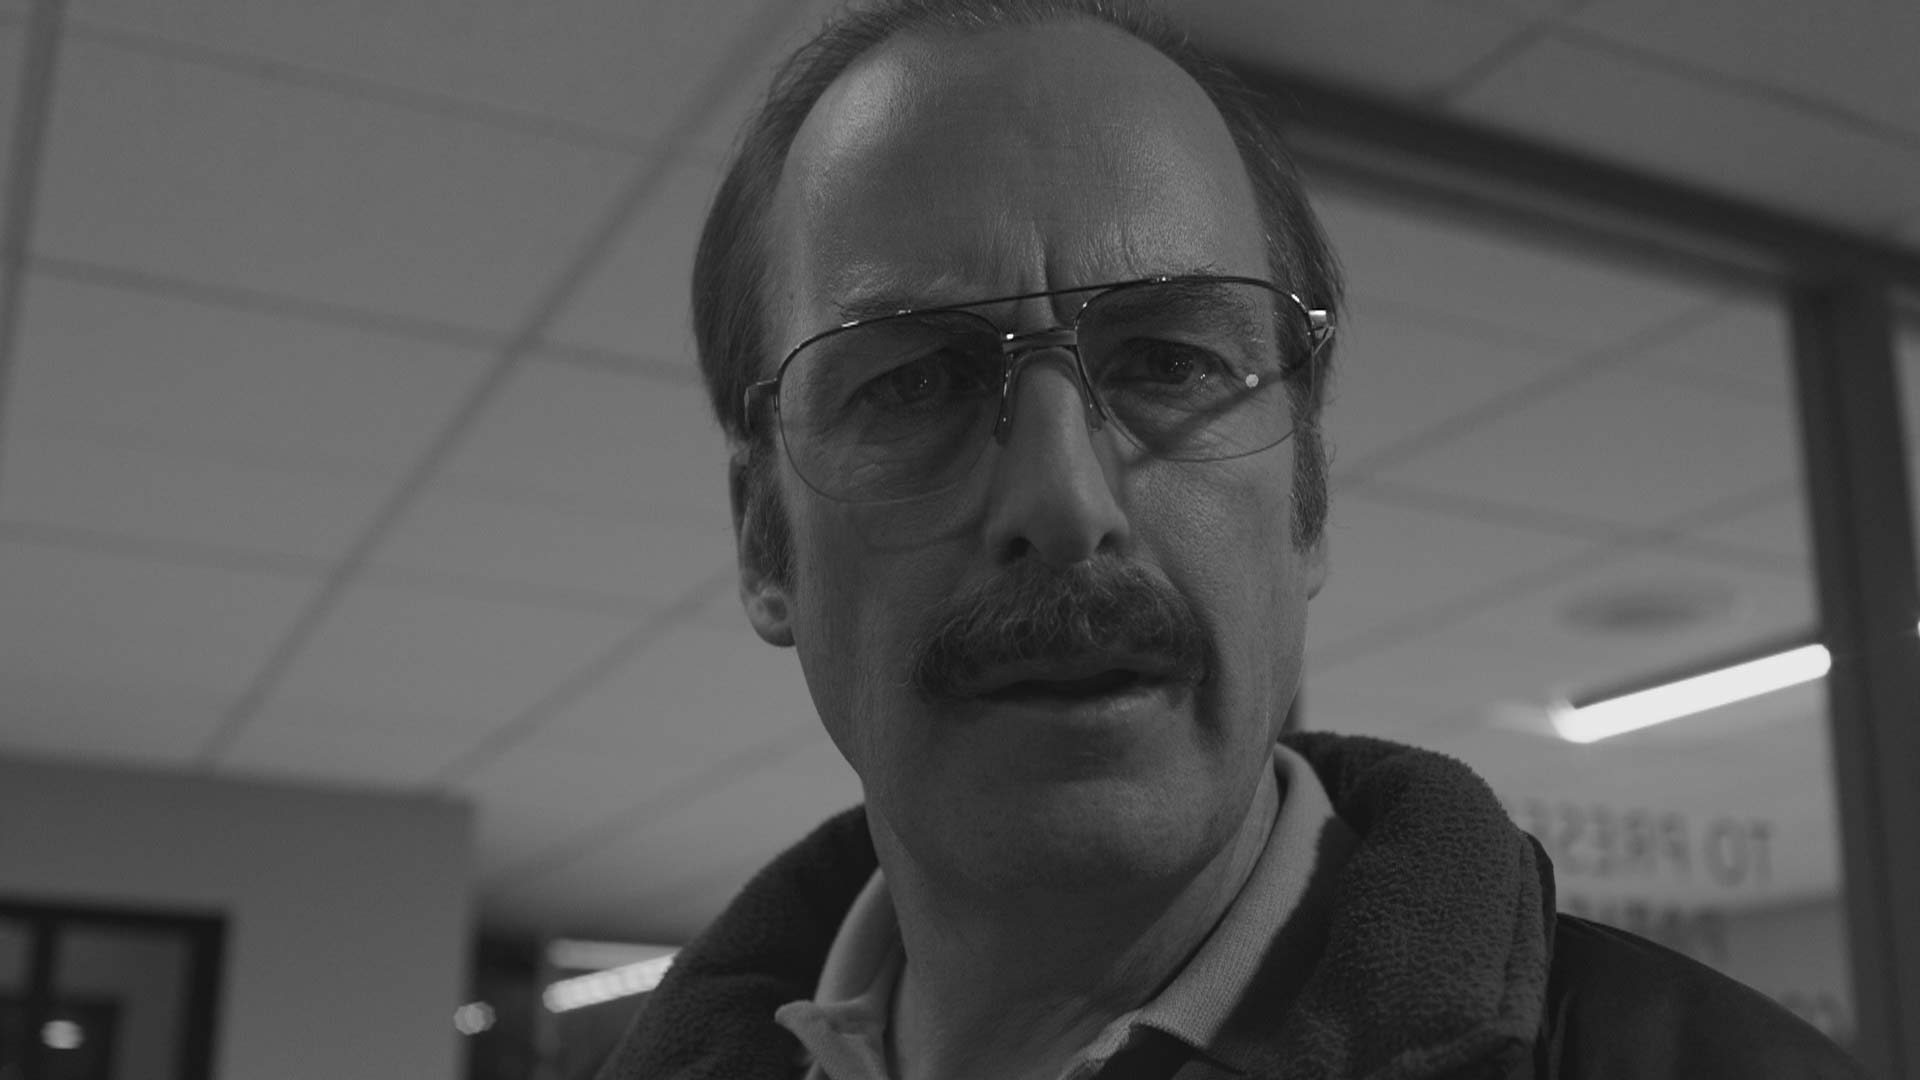 Blogs - Better Call Saul - Is Walter White Still Alive in